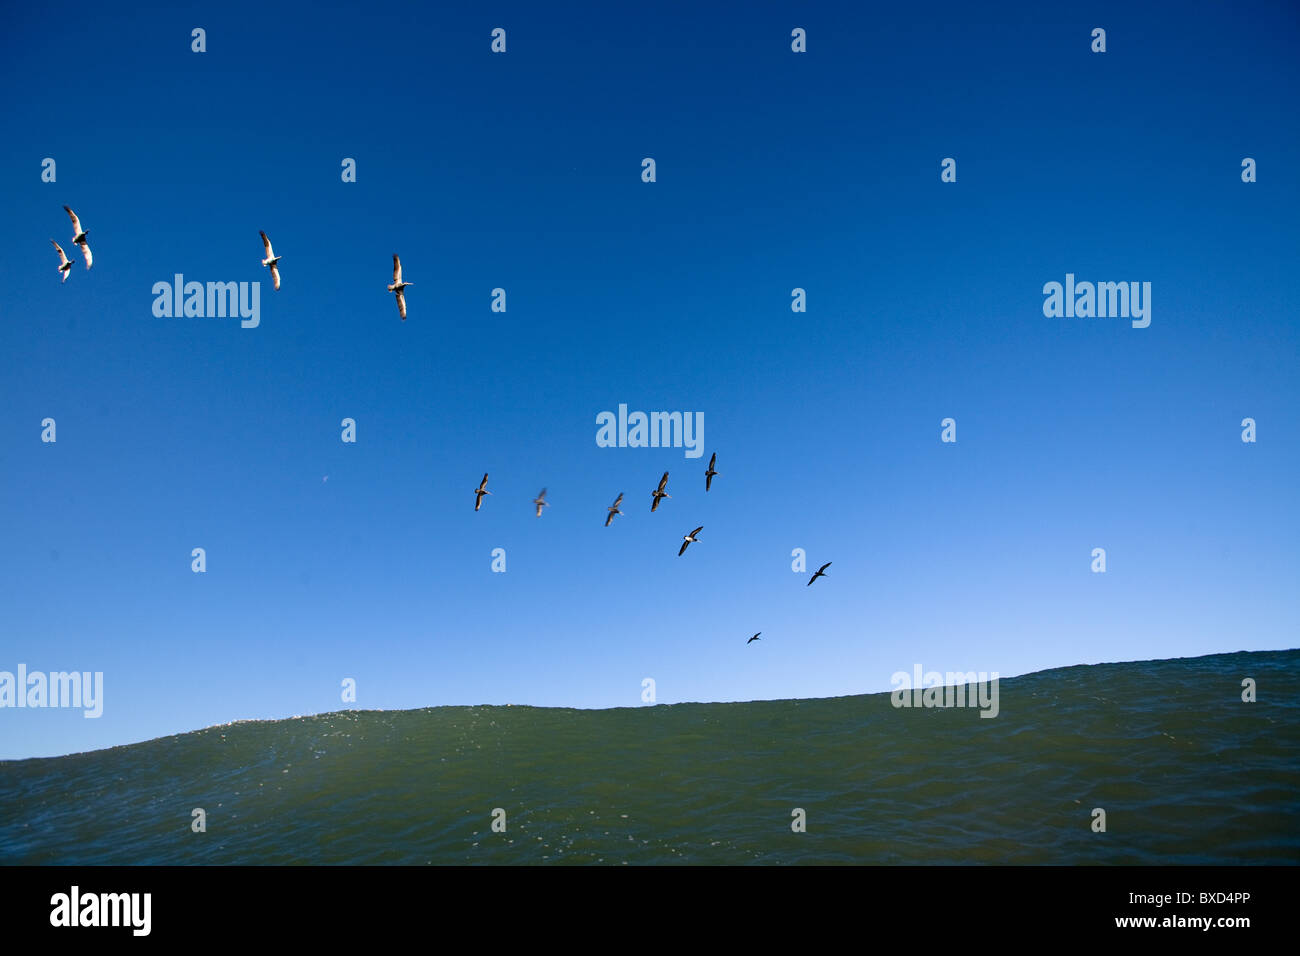 A flock of pelicans fly over a wave. - Stock Image